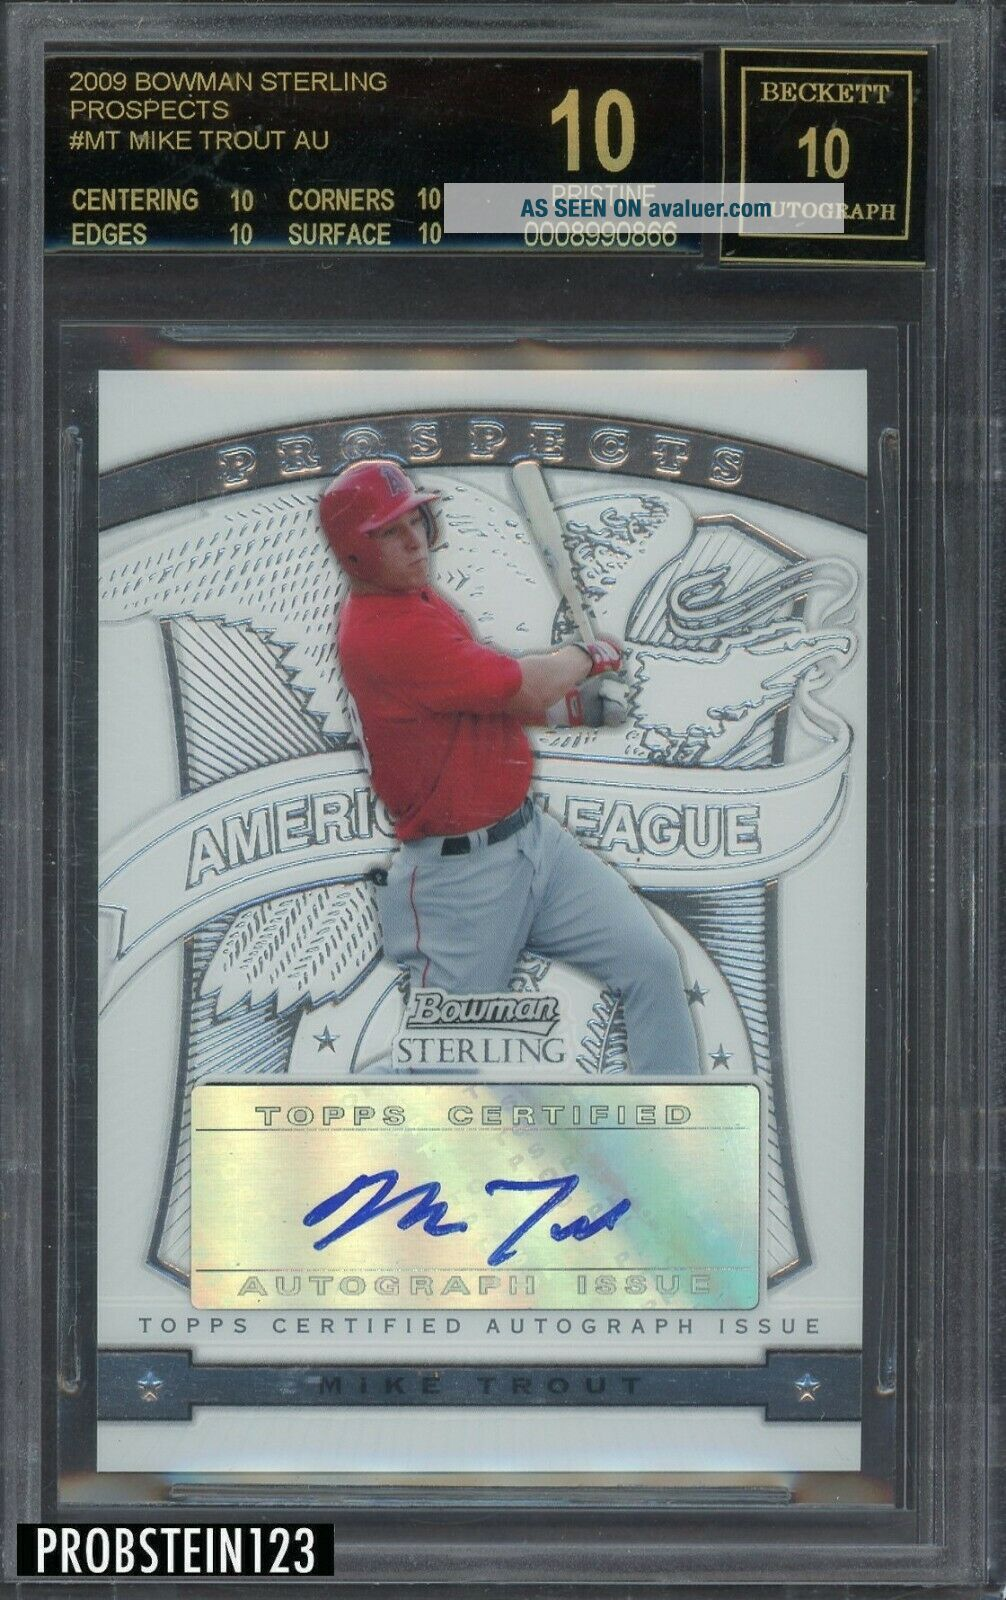 2009 Bowman Sterling MT Mike Trout Angels RC Rookie AUTO BGS 10 BLACK LABEL